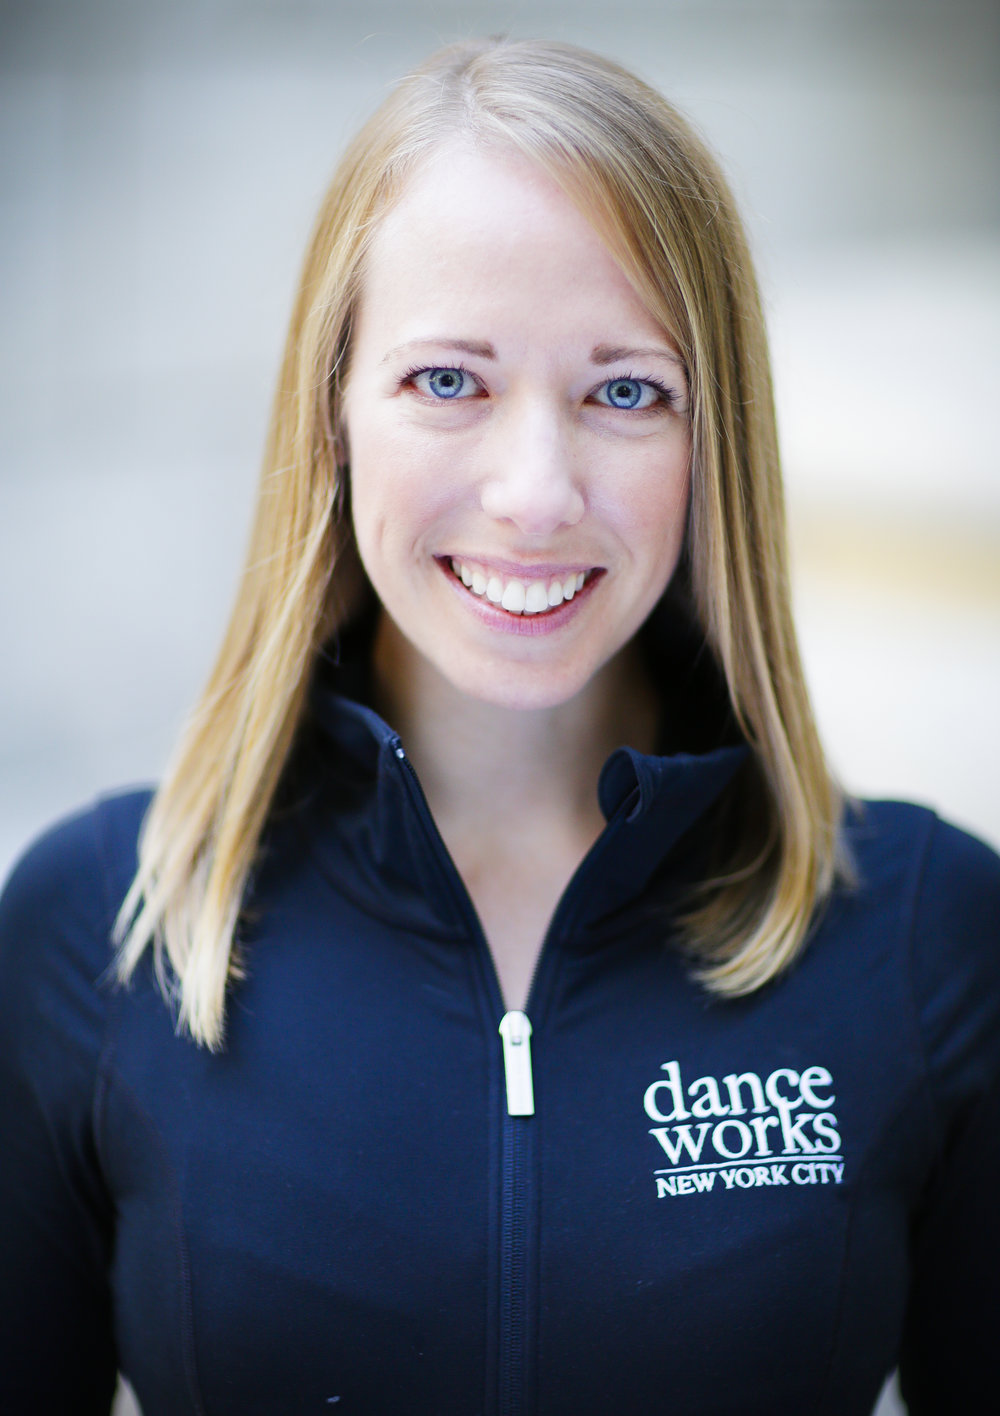 Director danceworks new york city, betsy moran